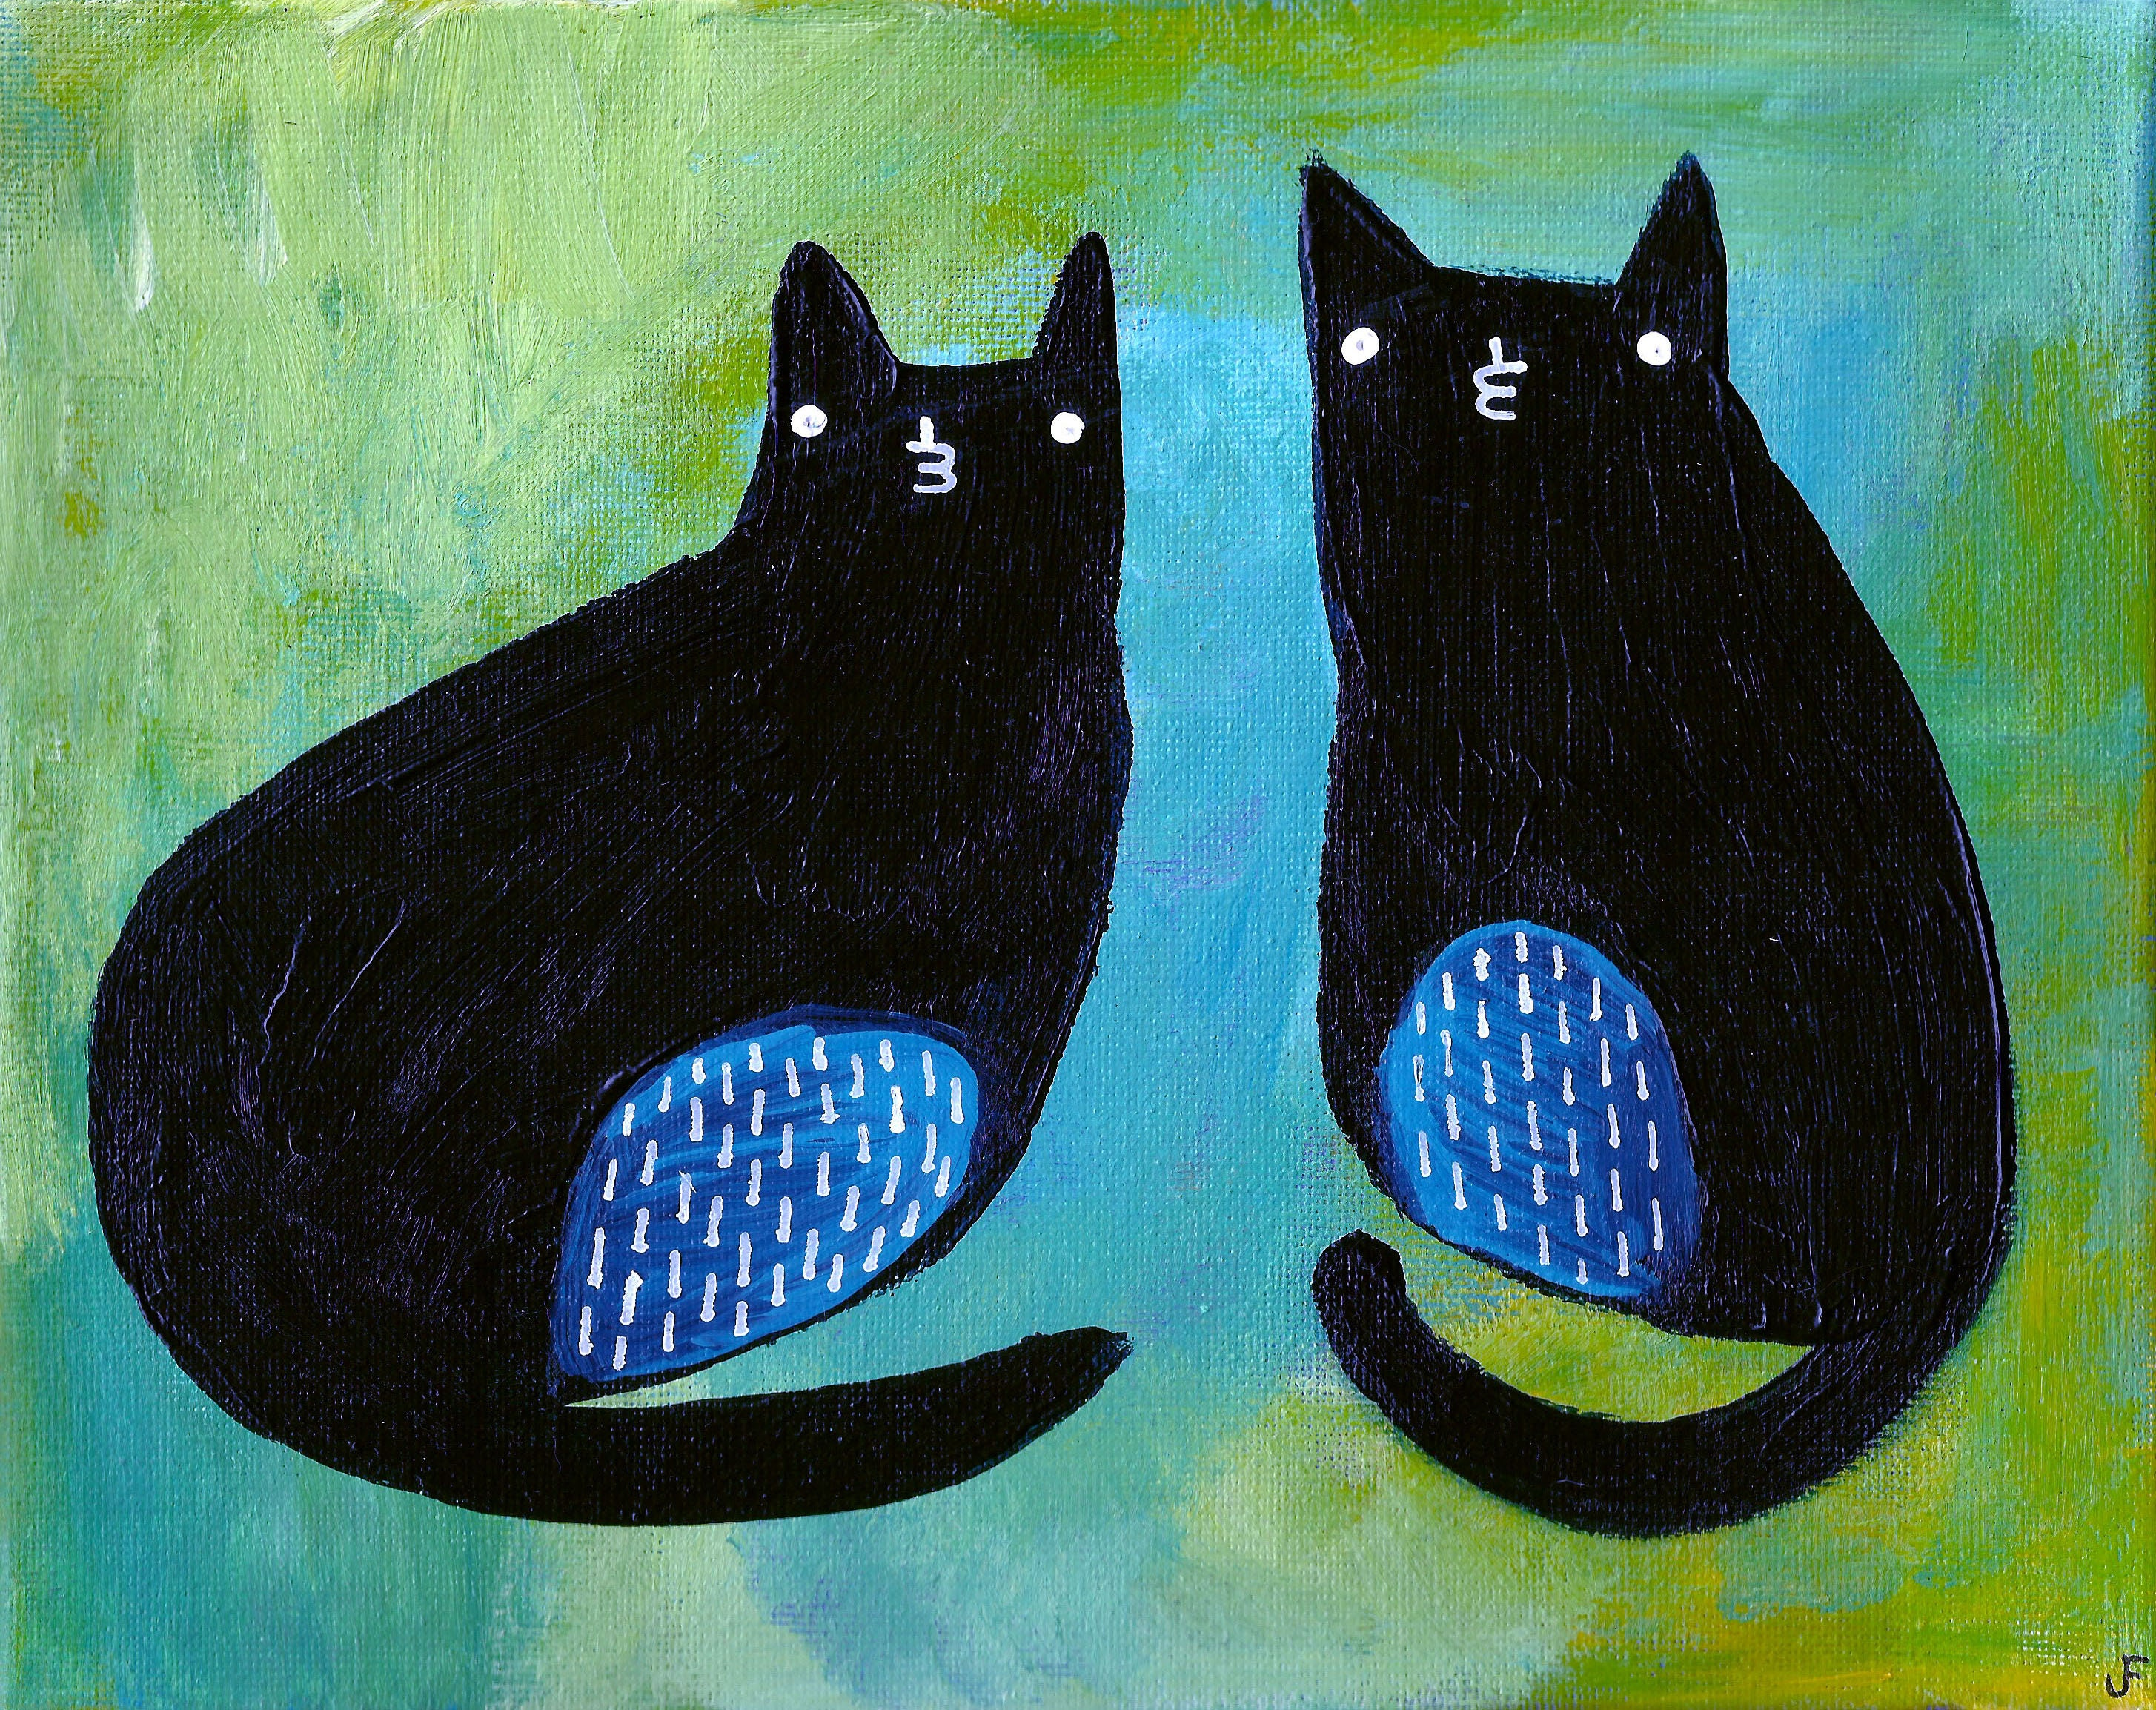 8x10 ART PRINT Cat Folk Art Painting Quirky Art Whimsical Wholesome Housewarming Home Decor Cat People Gift Weird Stuff Cute Birthday Gifts